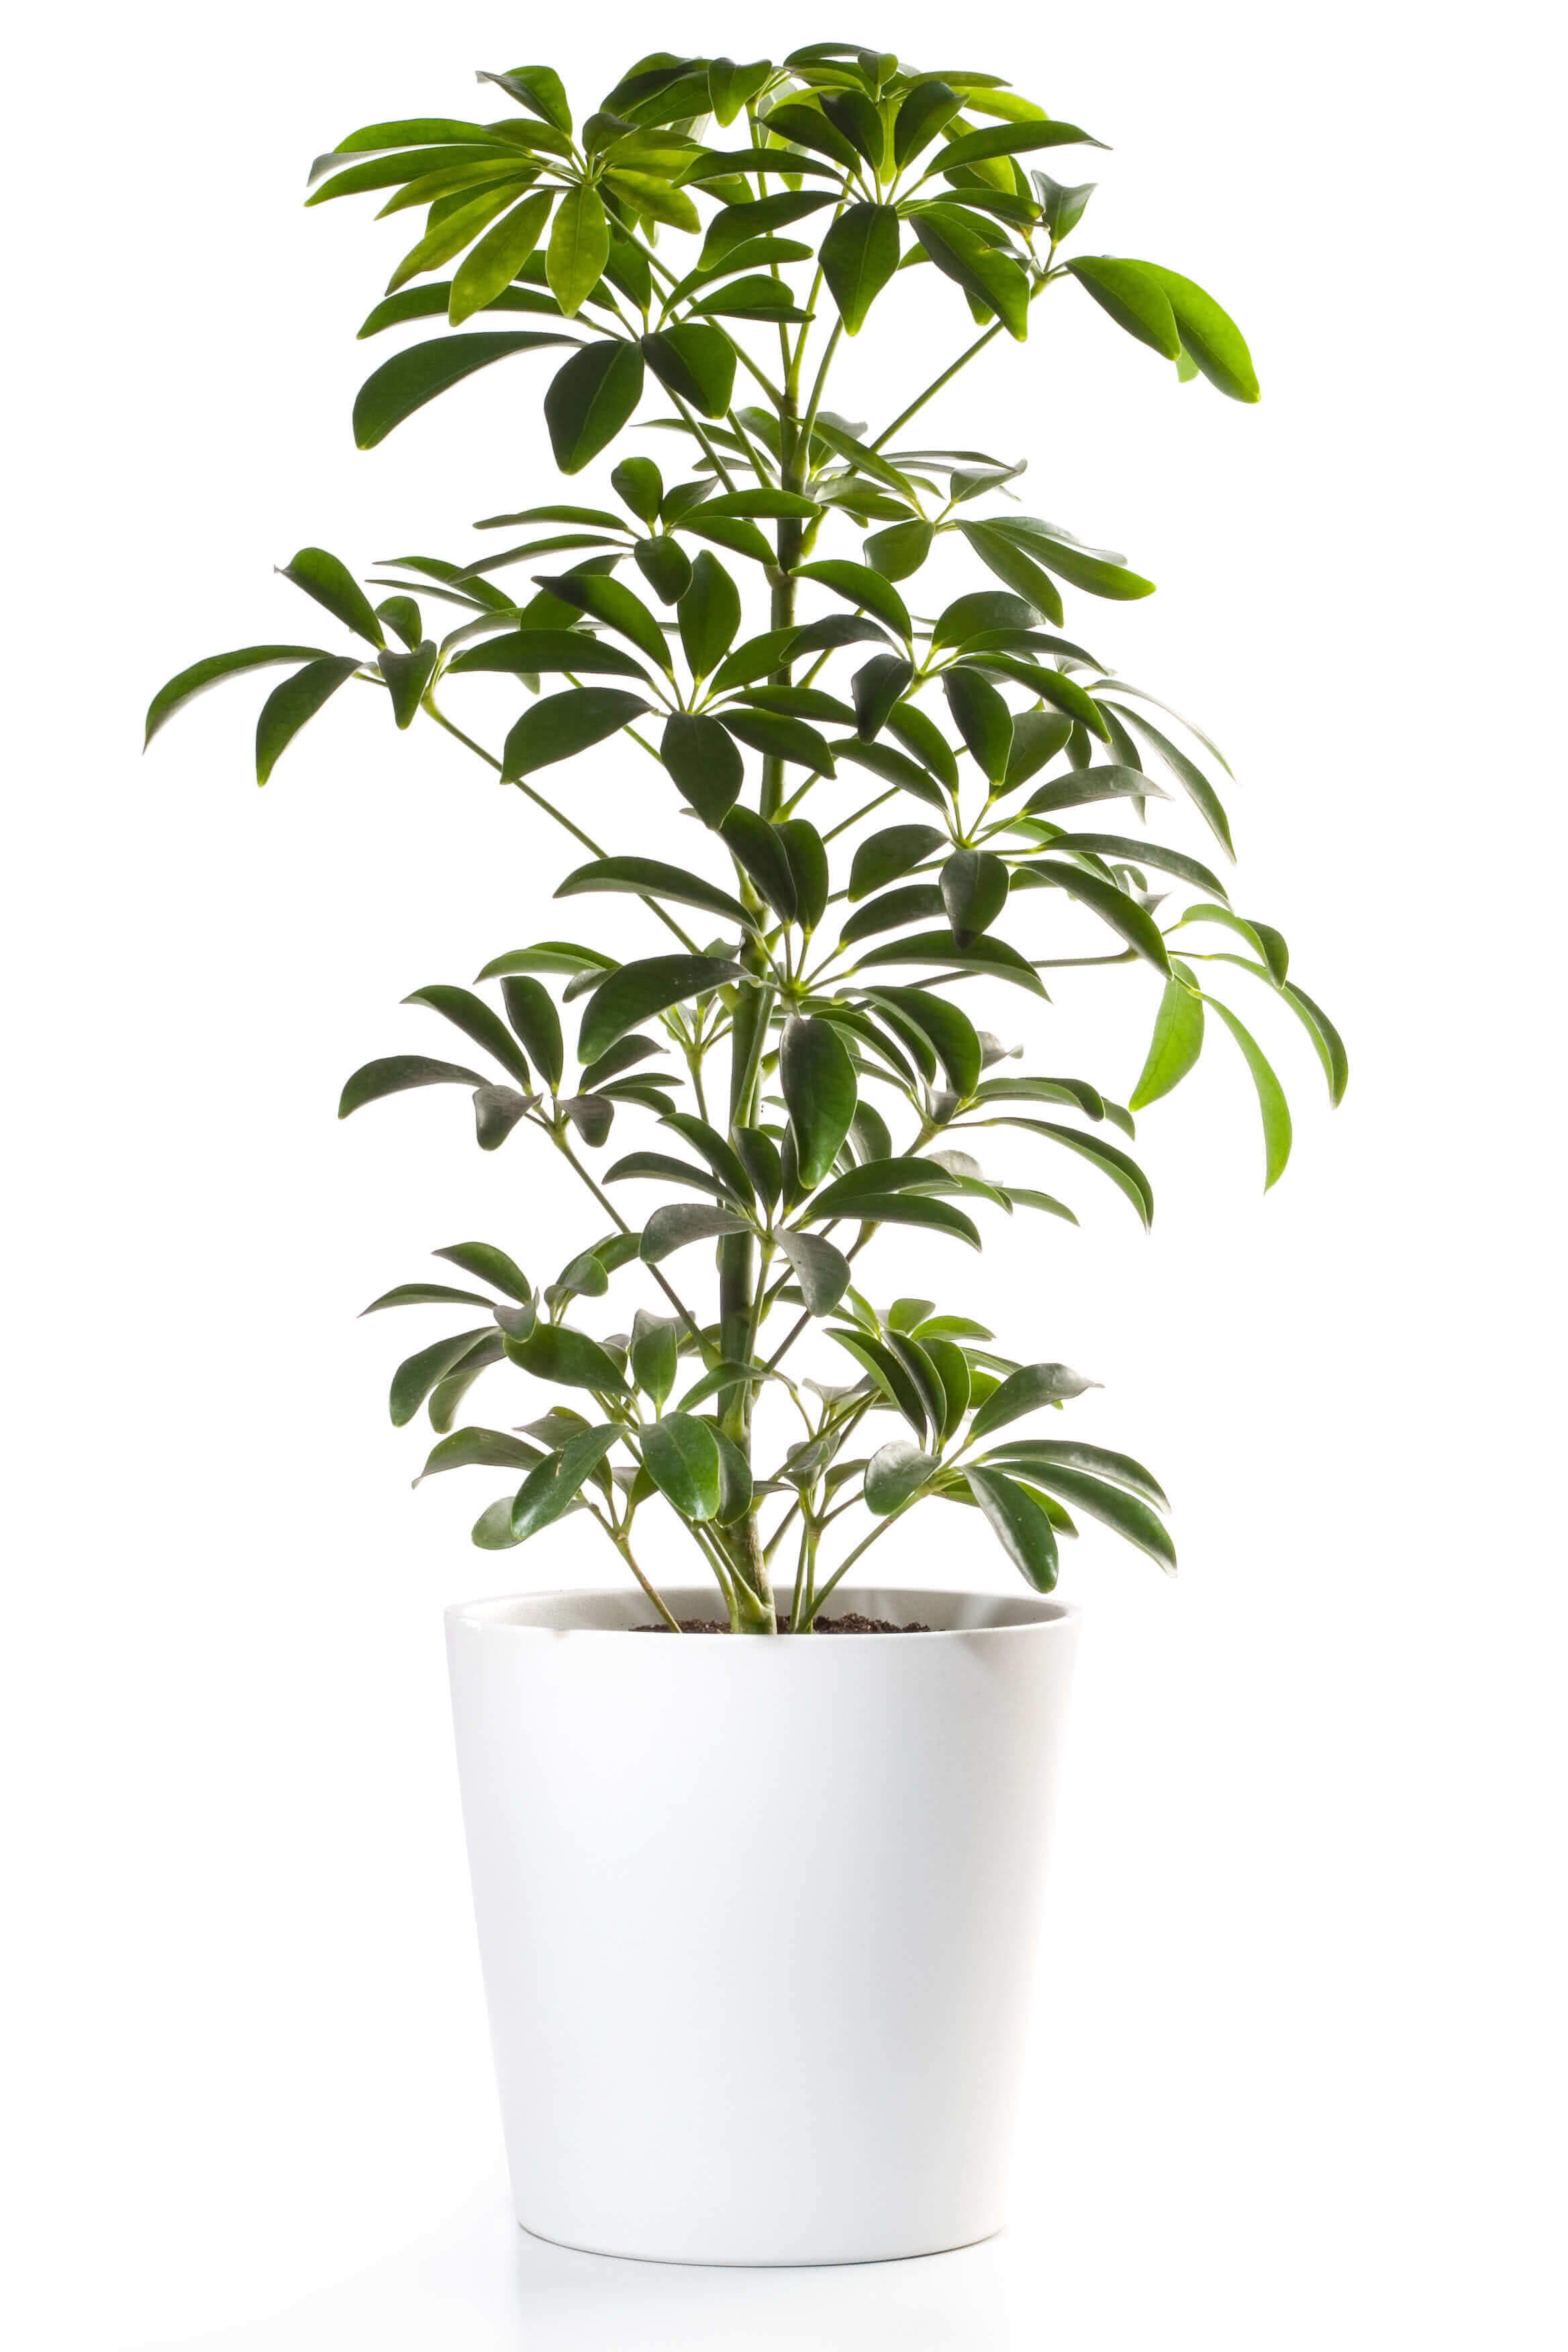 Top 10 low maintenance plants easy care plants desk plants for Low maintenance potted plants